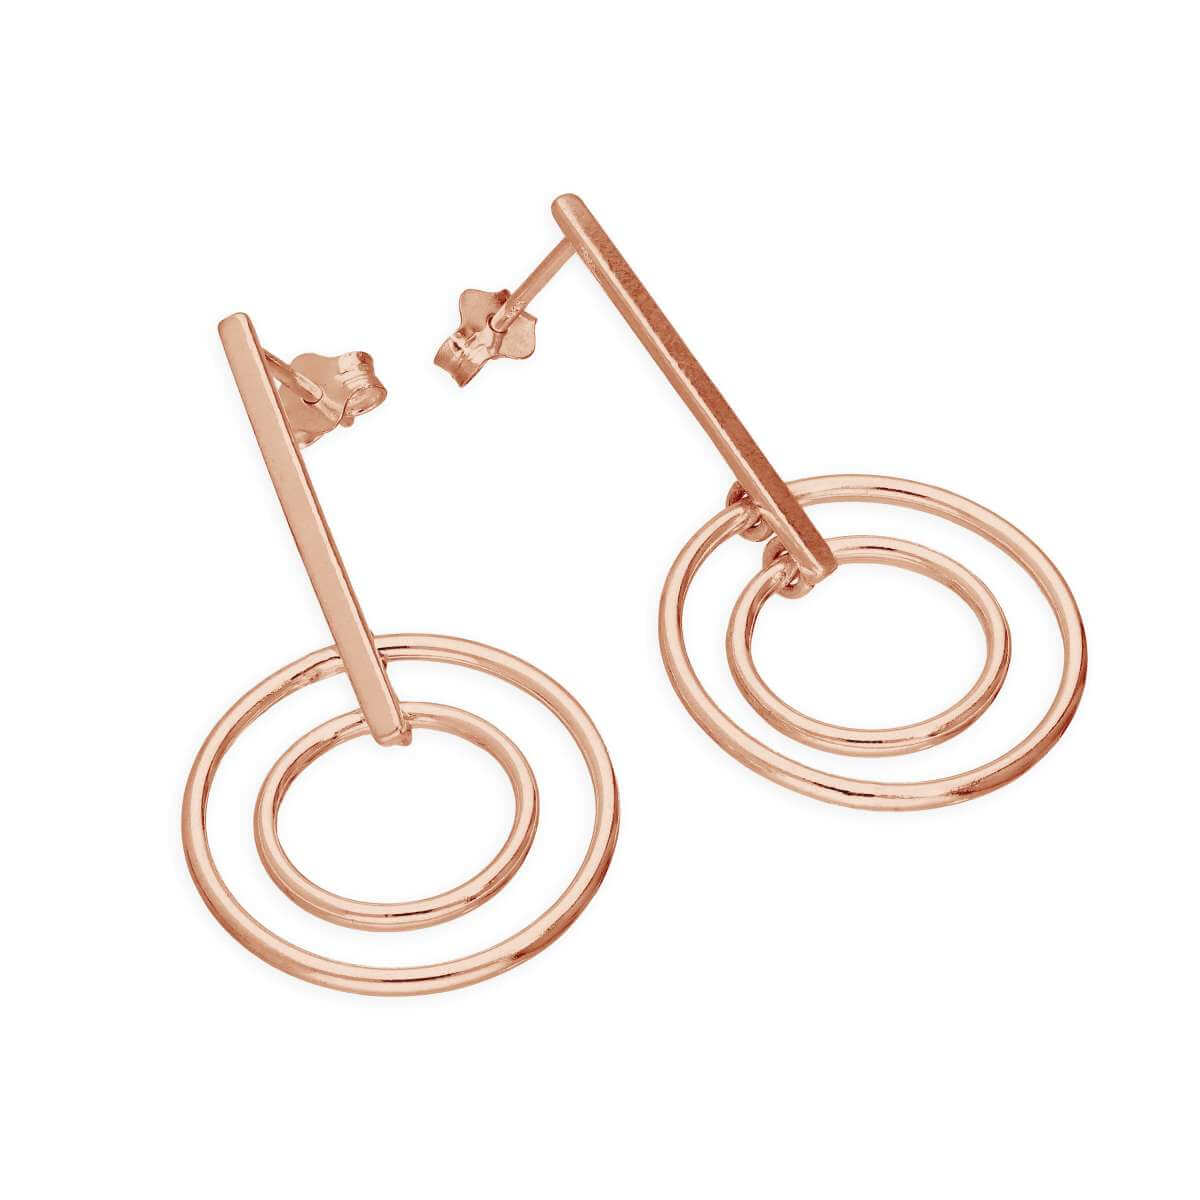 Rose Gold Plated Sterling Silver Bar & Circles Drop Stud Earrings